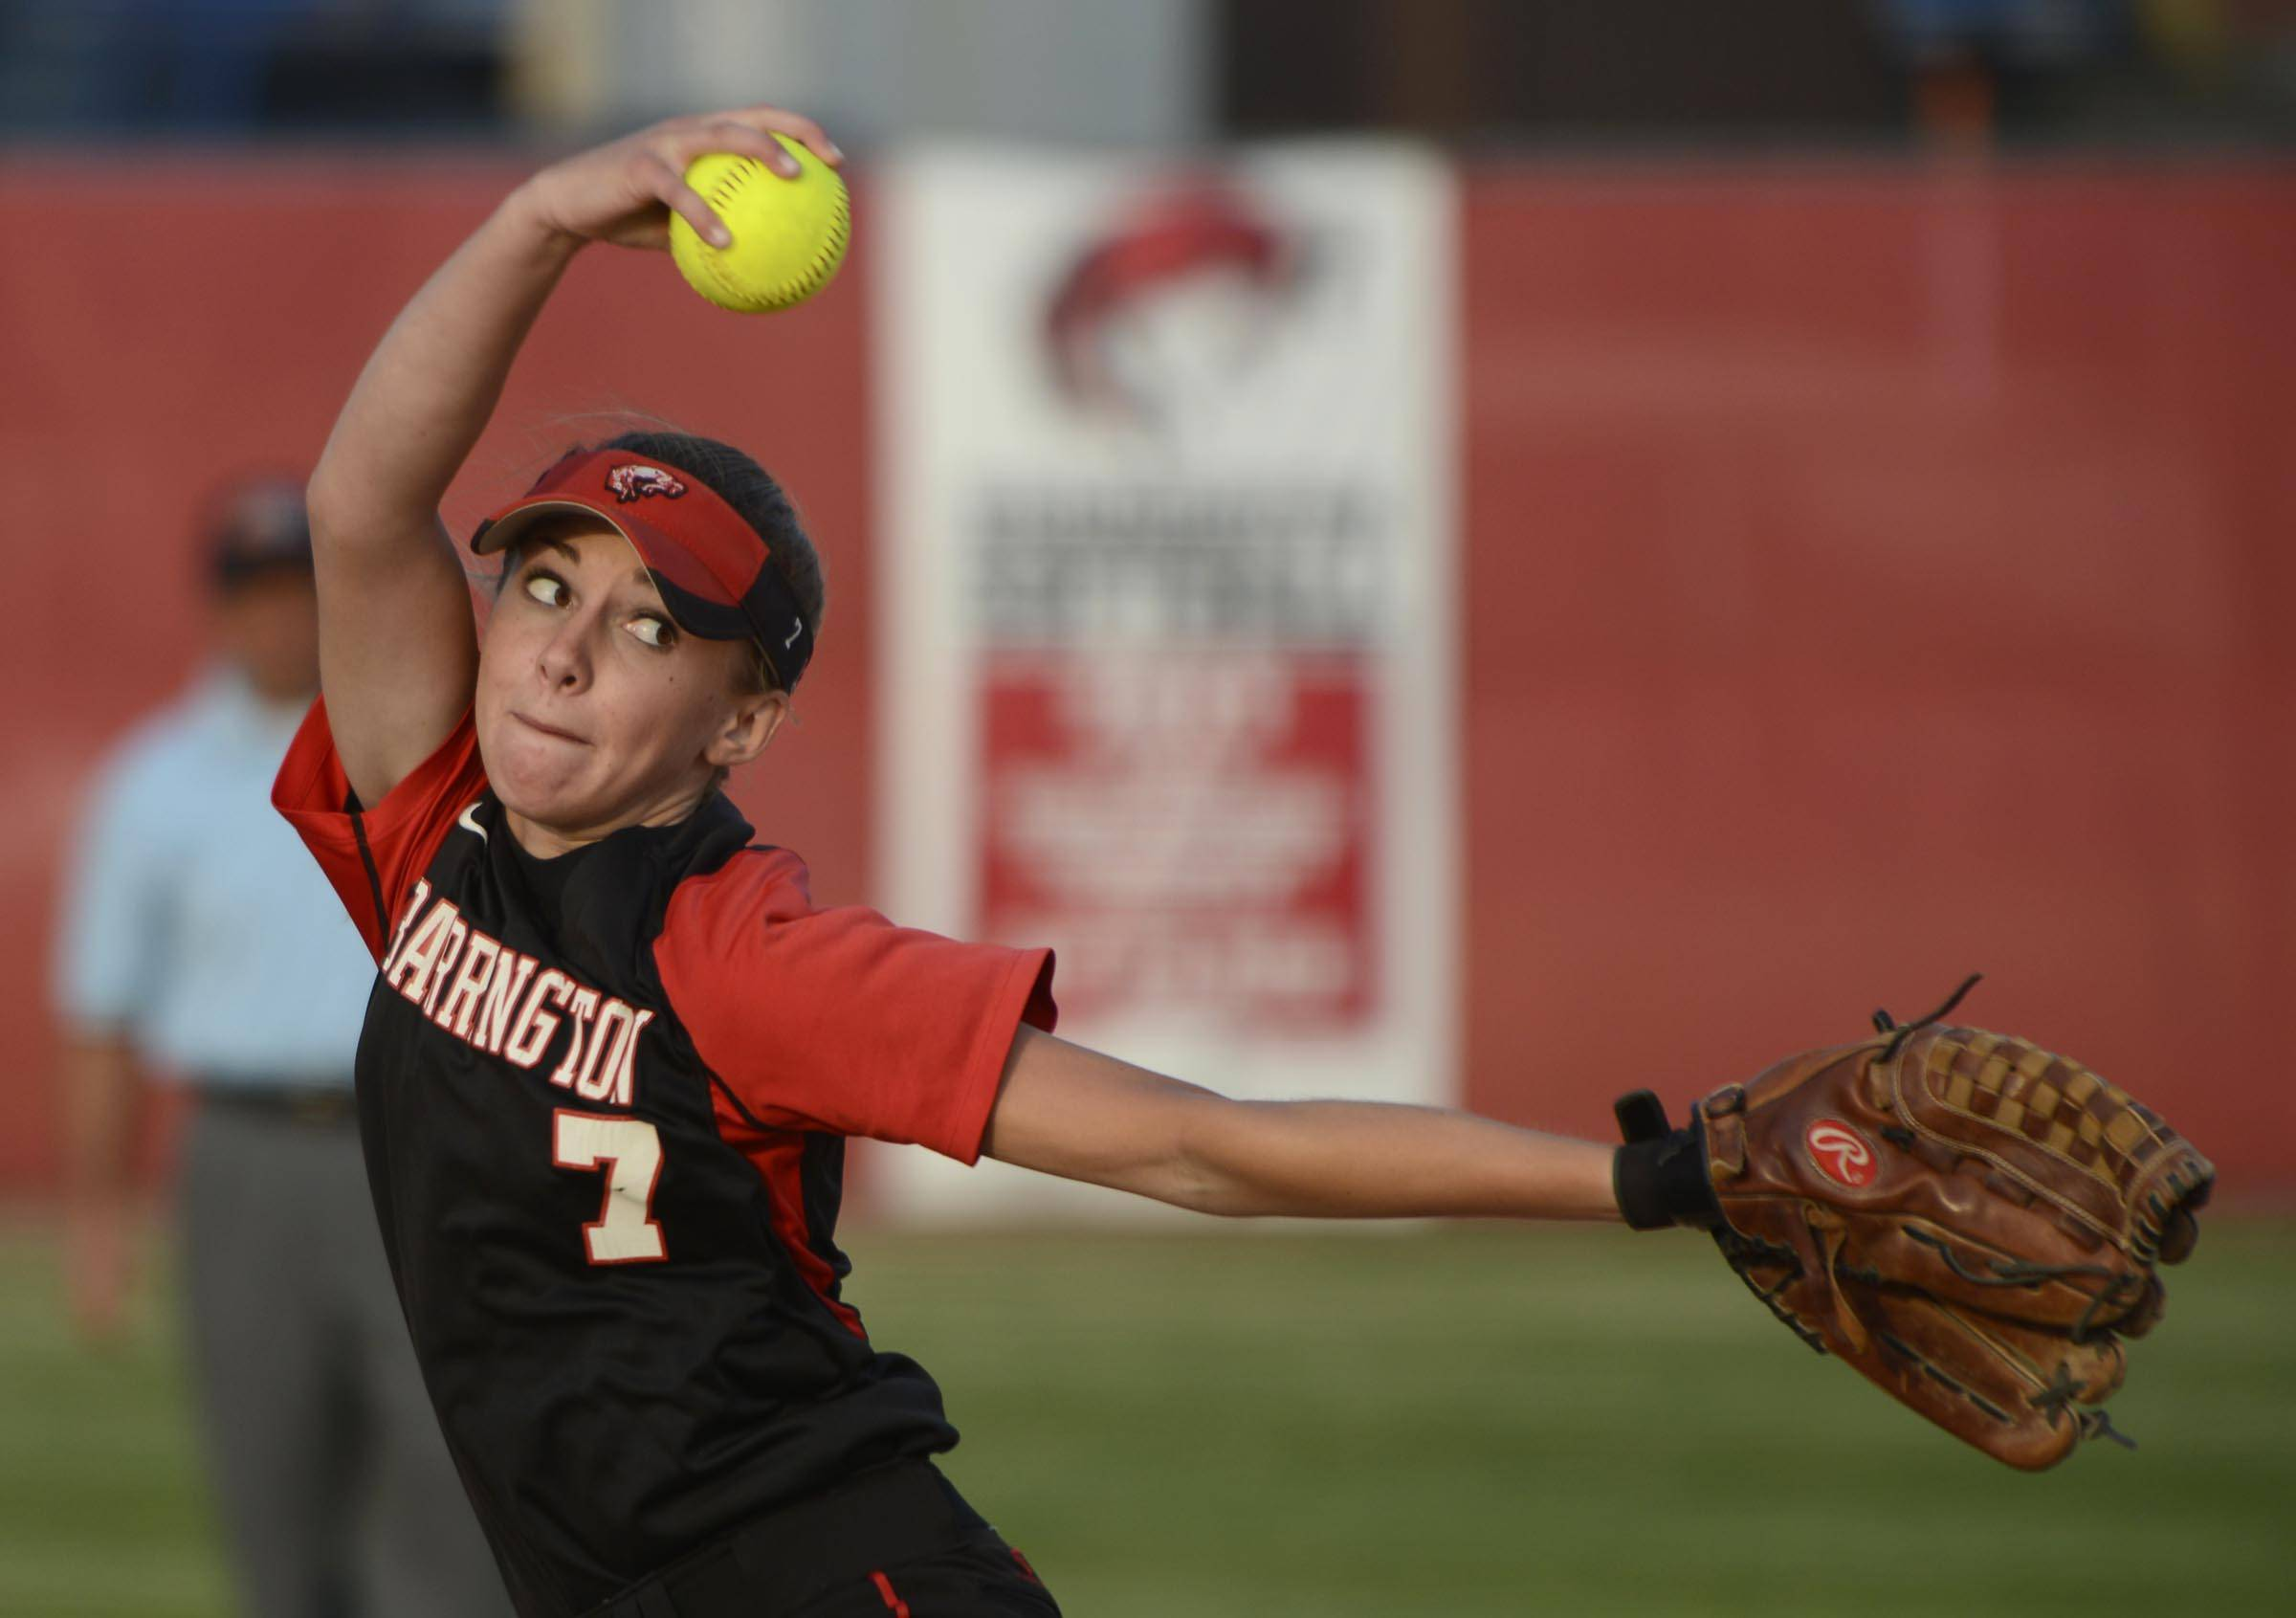 Barrington's Keenan Dolezal delivers against Warren in the Class 4A Barrington supersectional Monday.